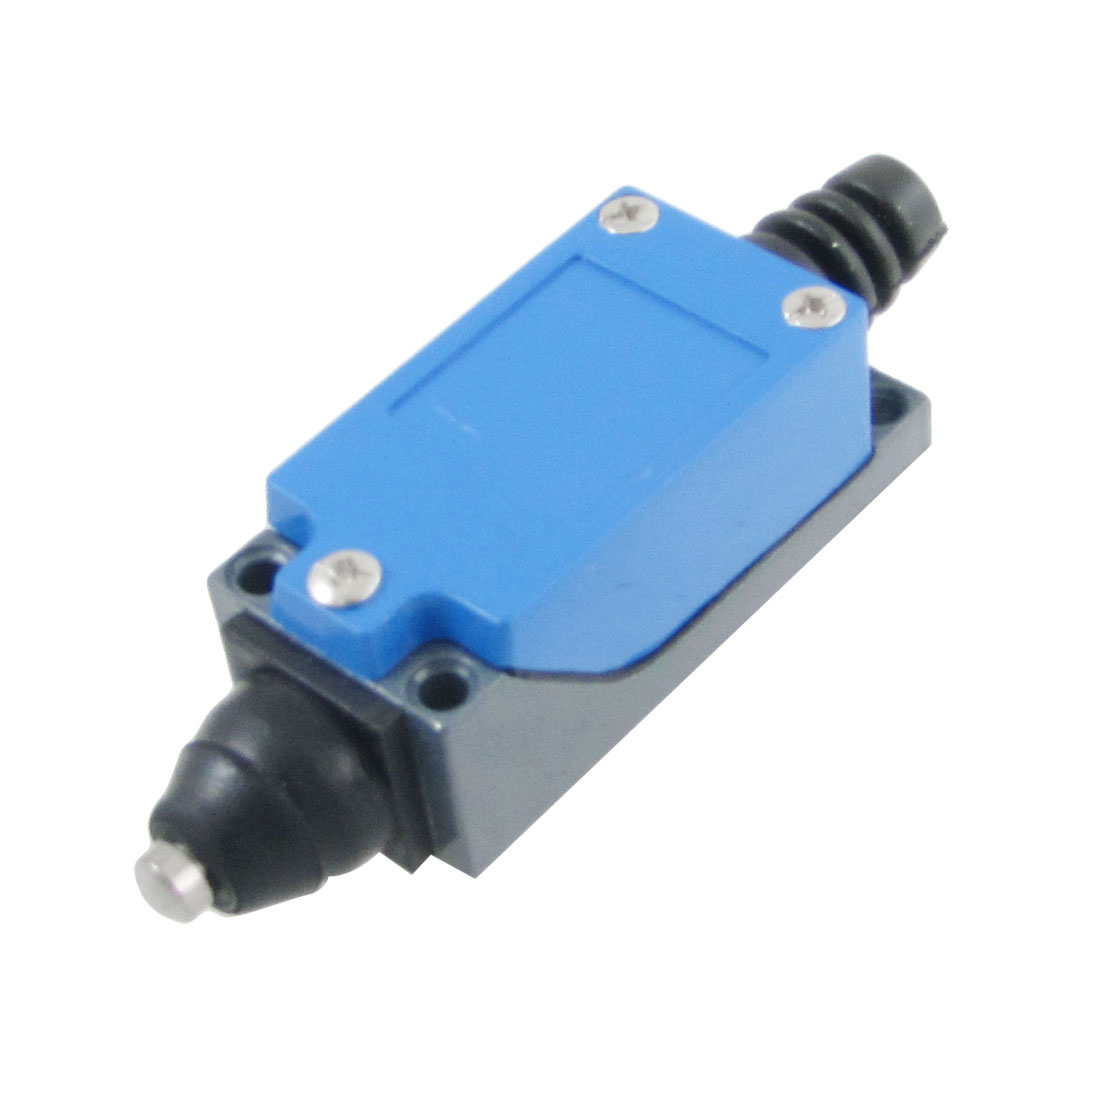 ME-8111 Cross Roller Plunger Enclosed Limit Switch 5A/250VAC 0.4A/115VDC